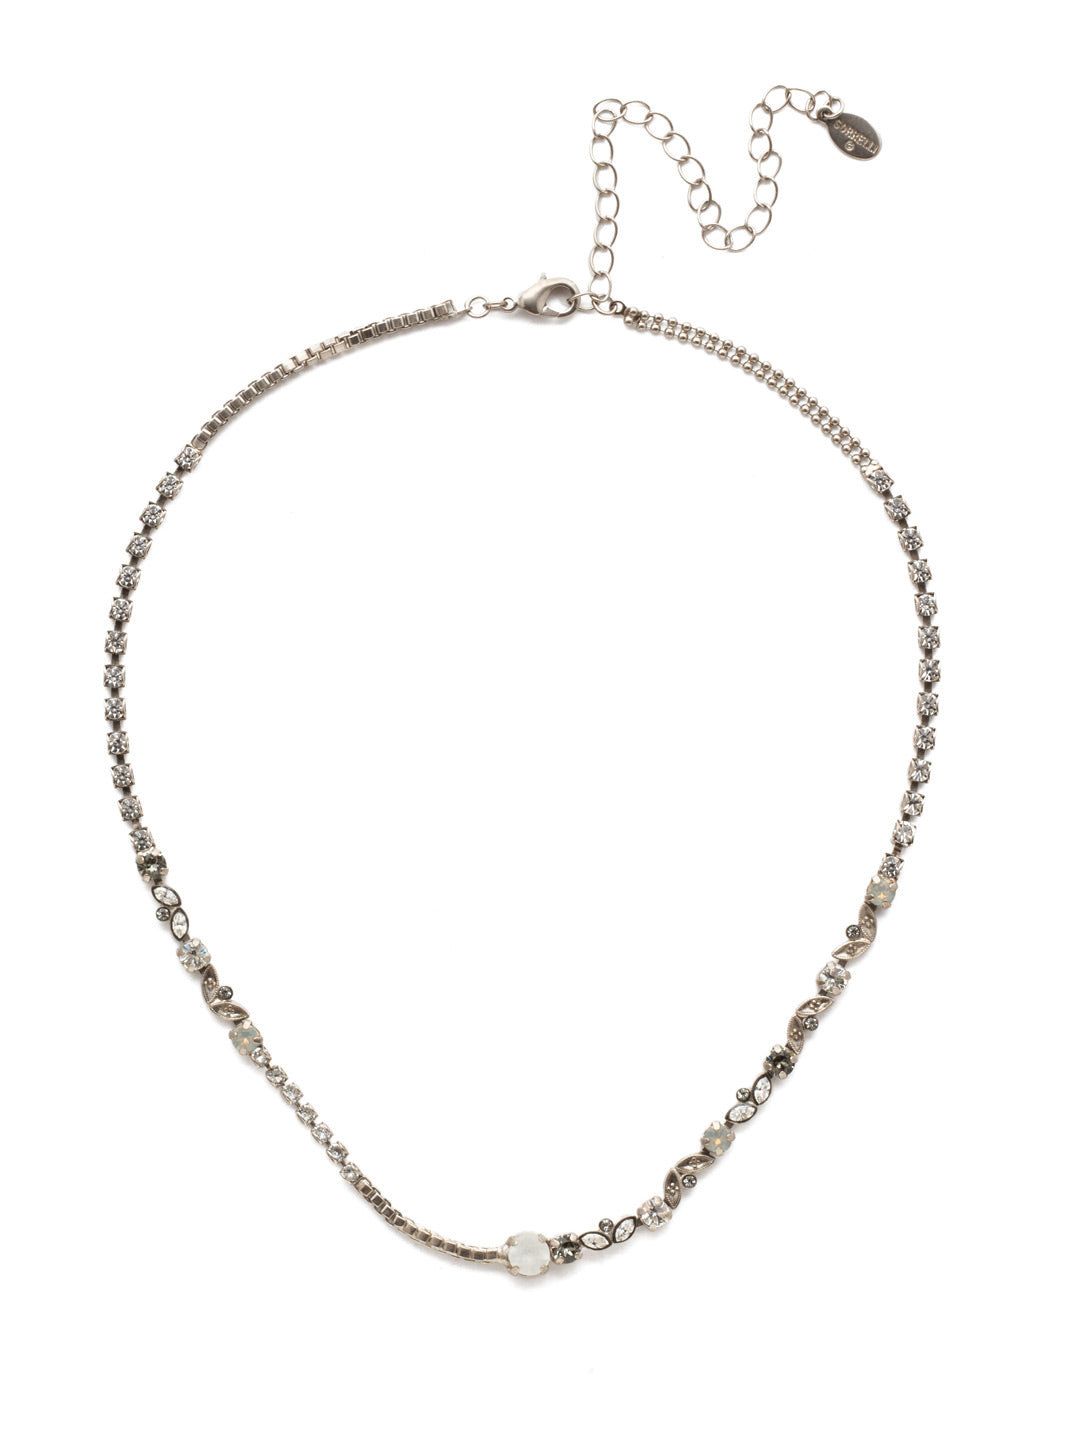 Juliette Tennis Necklace - NEN13ASSTC